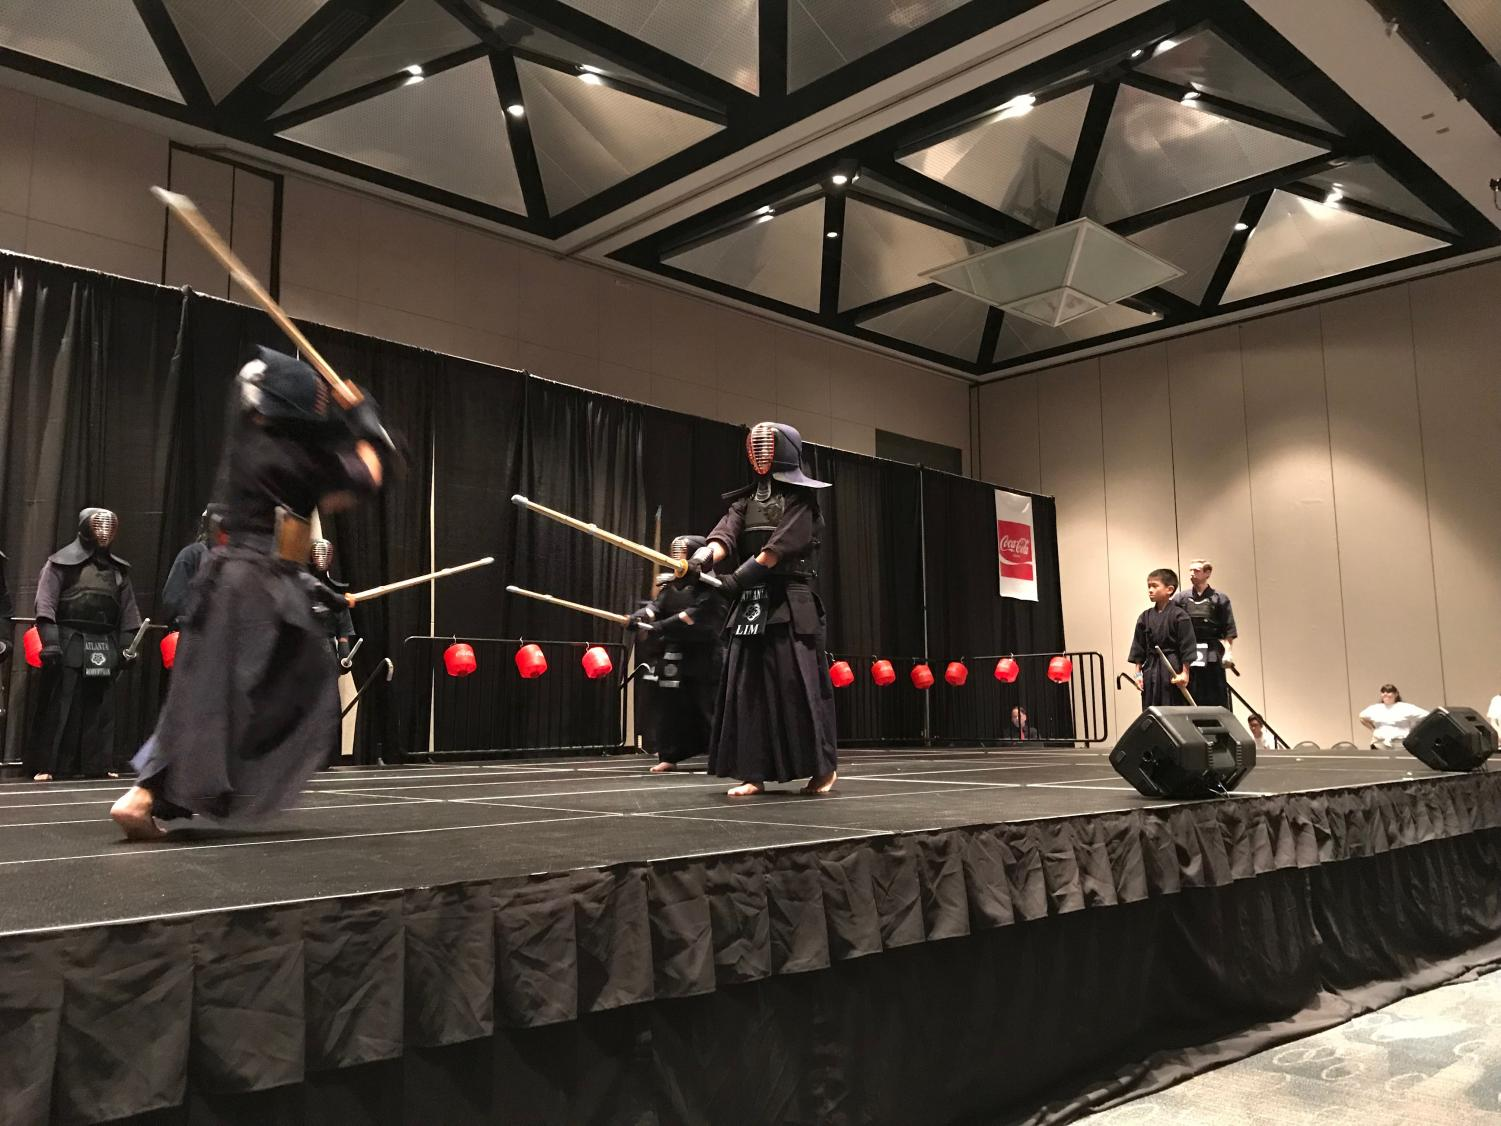 Victor Lim (right) during a kendo match.